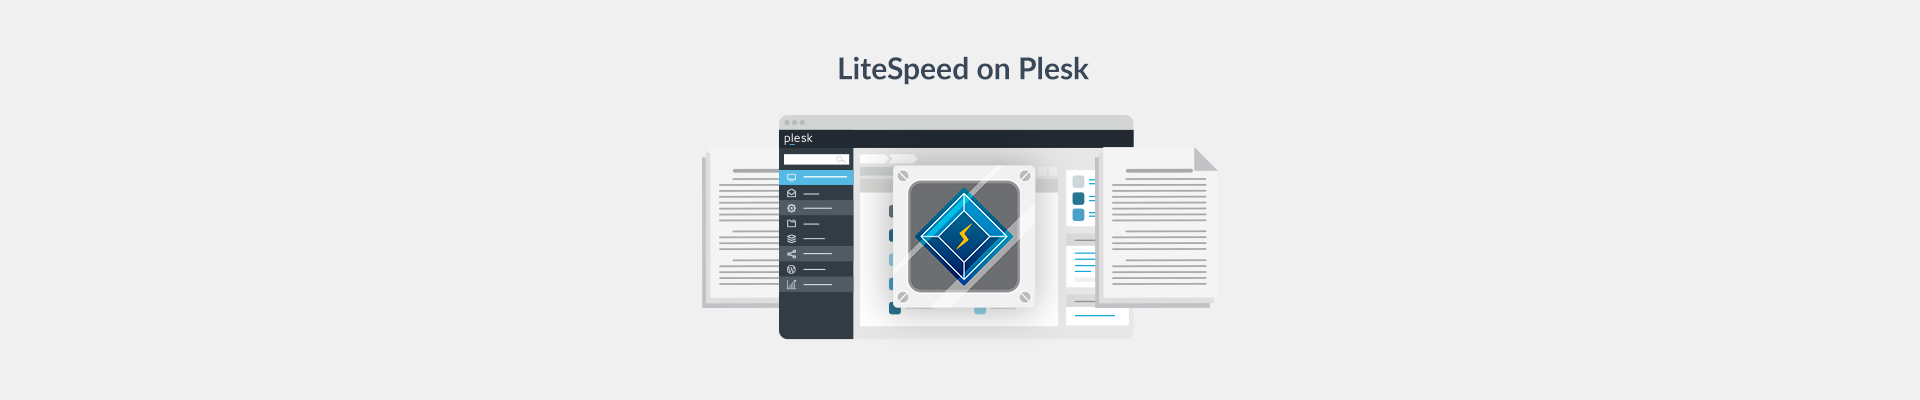 Litespeed for WordPress Plesk